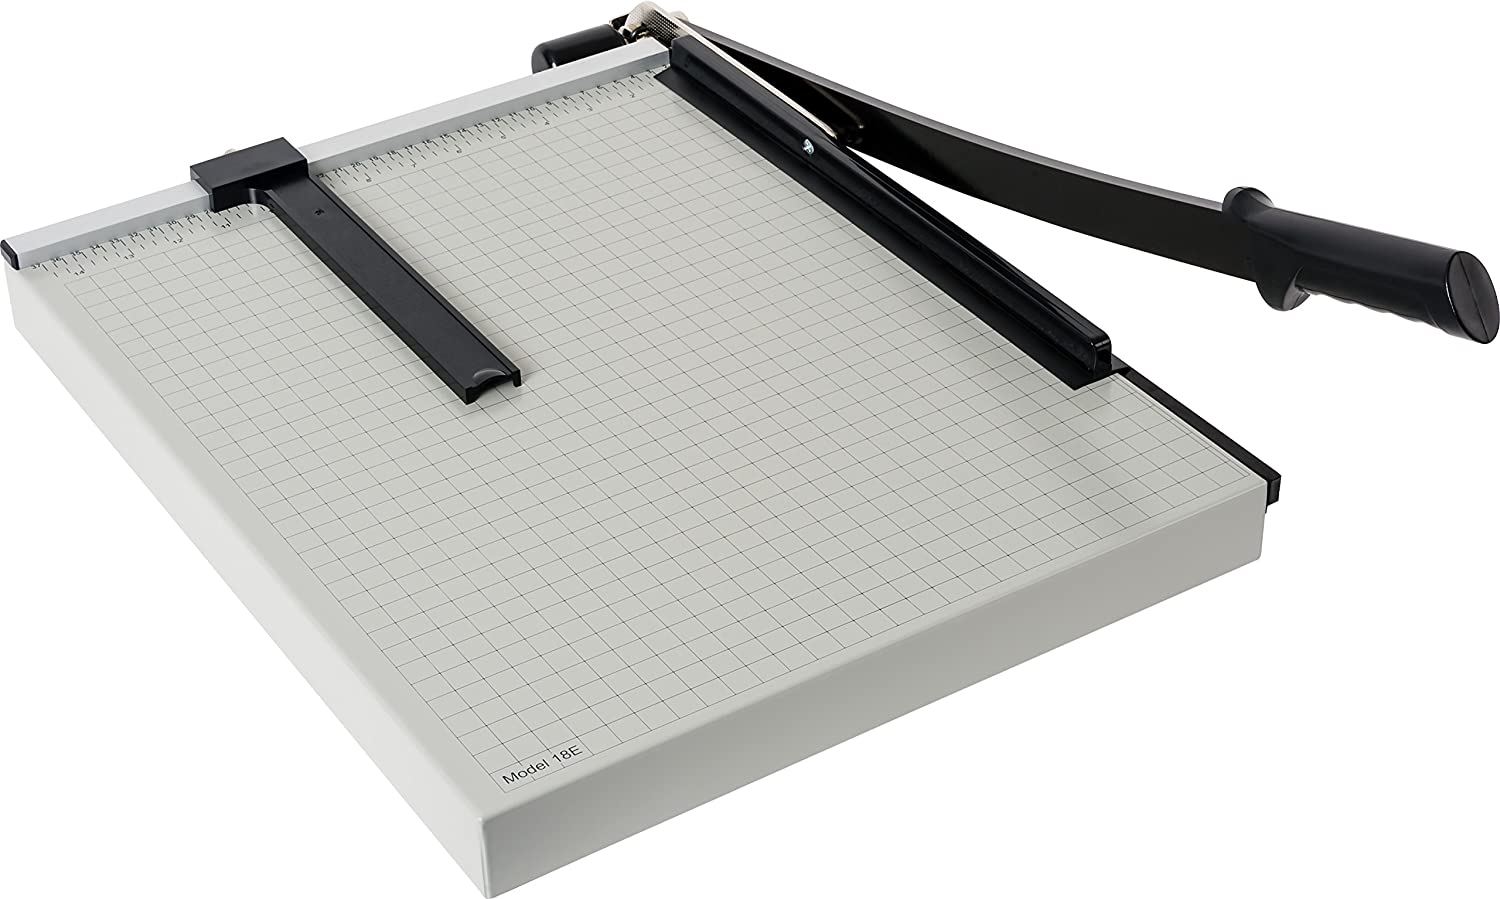 "Dahle 18e Vantage Paper Trimmer, 18"" Cut Length, 15 Sheet, Automatic Clamp, Adjustable Guide, Metal Base with 1/2"" Gridlines, Guillotine Paper Cutter - 40018-12568"